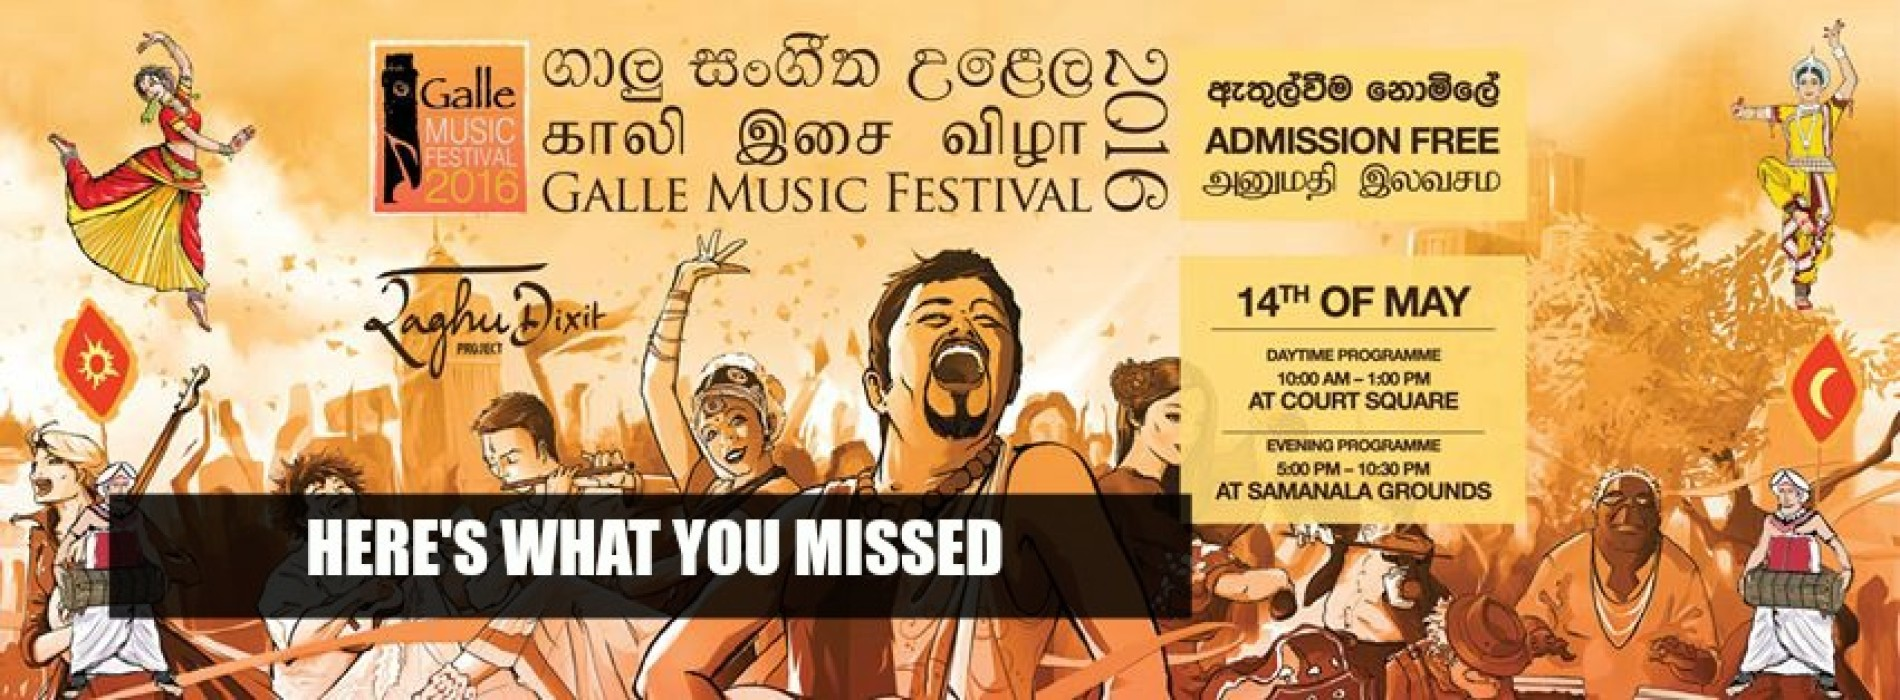 Galle Music Festival : Here's What You Missed